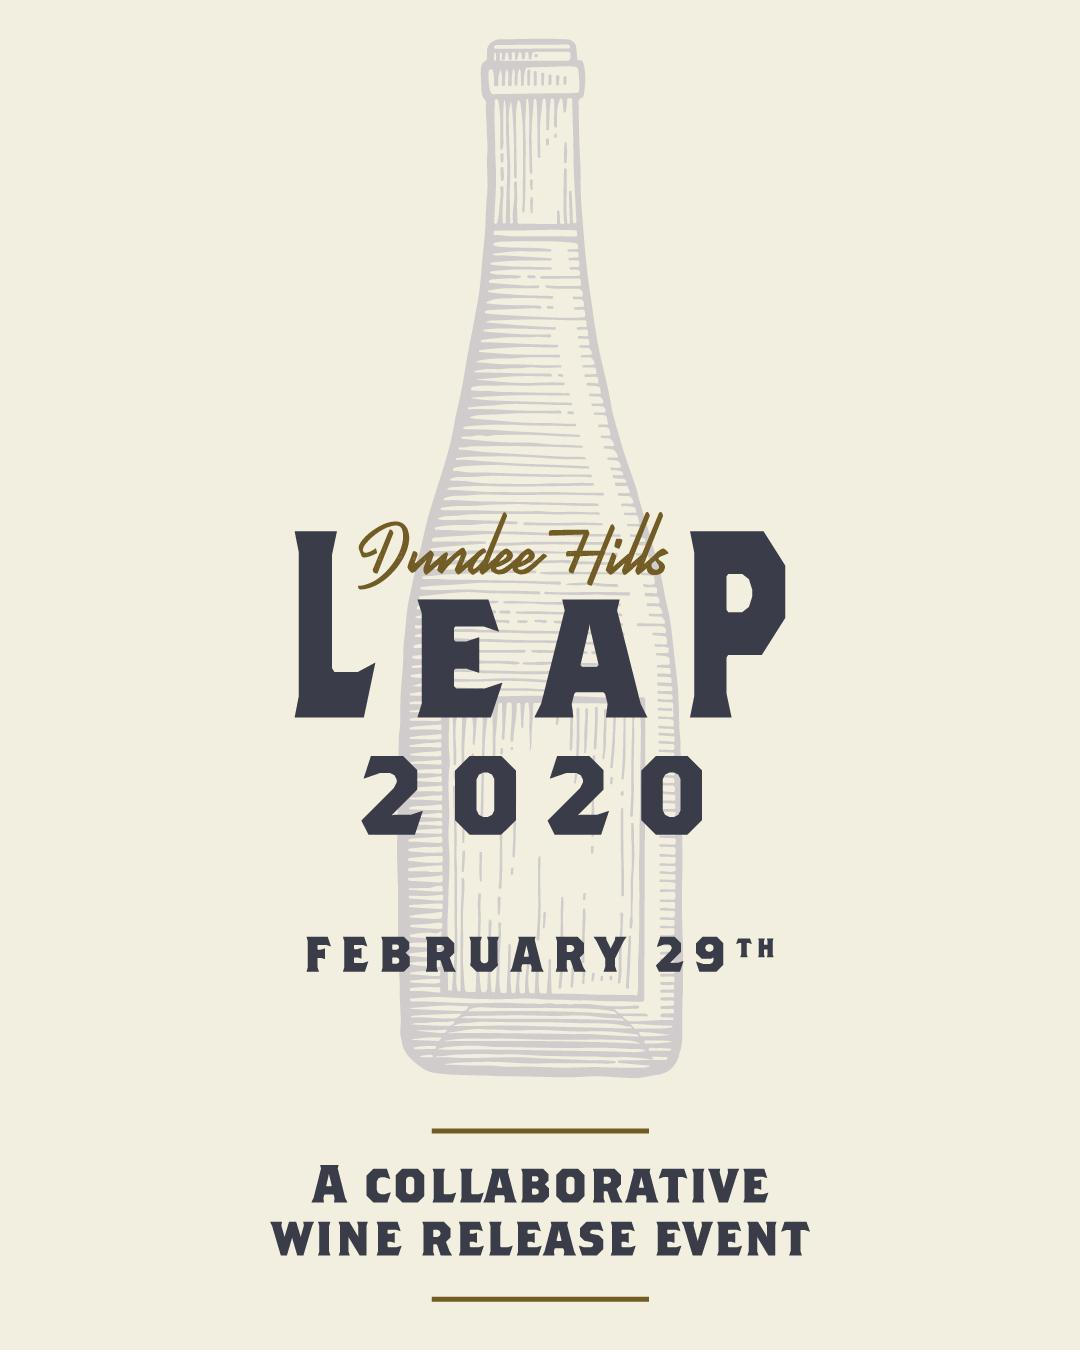 Leap insta image feed - Dundee Hills Leap 2020 - A Collaborative Wine Release Event